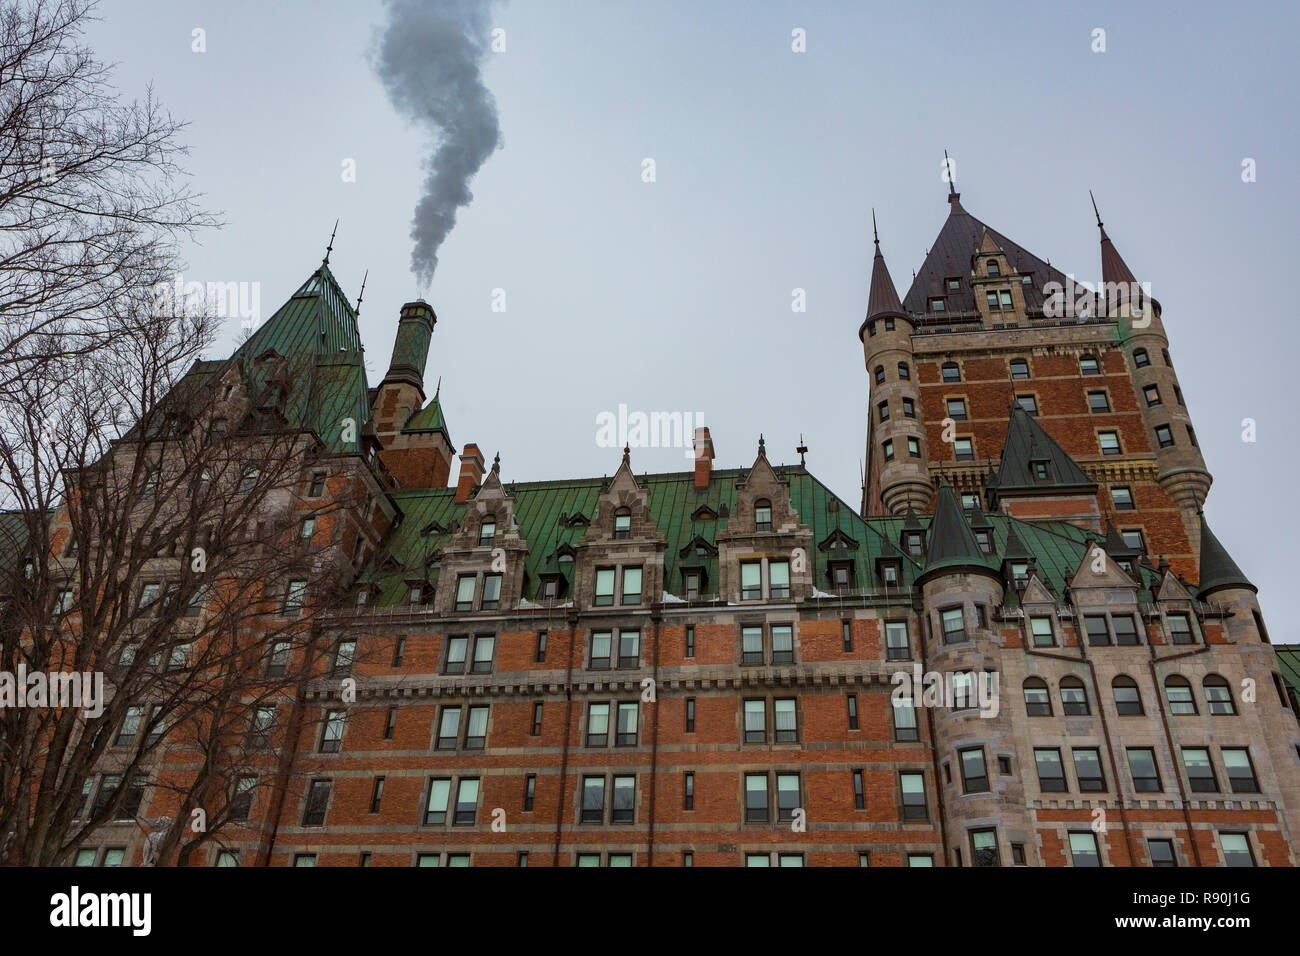 The Fairmont Le Château Frontenac, formerly and commonly referred to as the Château Frontenac, is a historic hotel in Quebec City, Quebec, Canada. - Stock Image